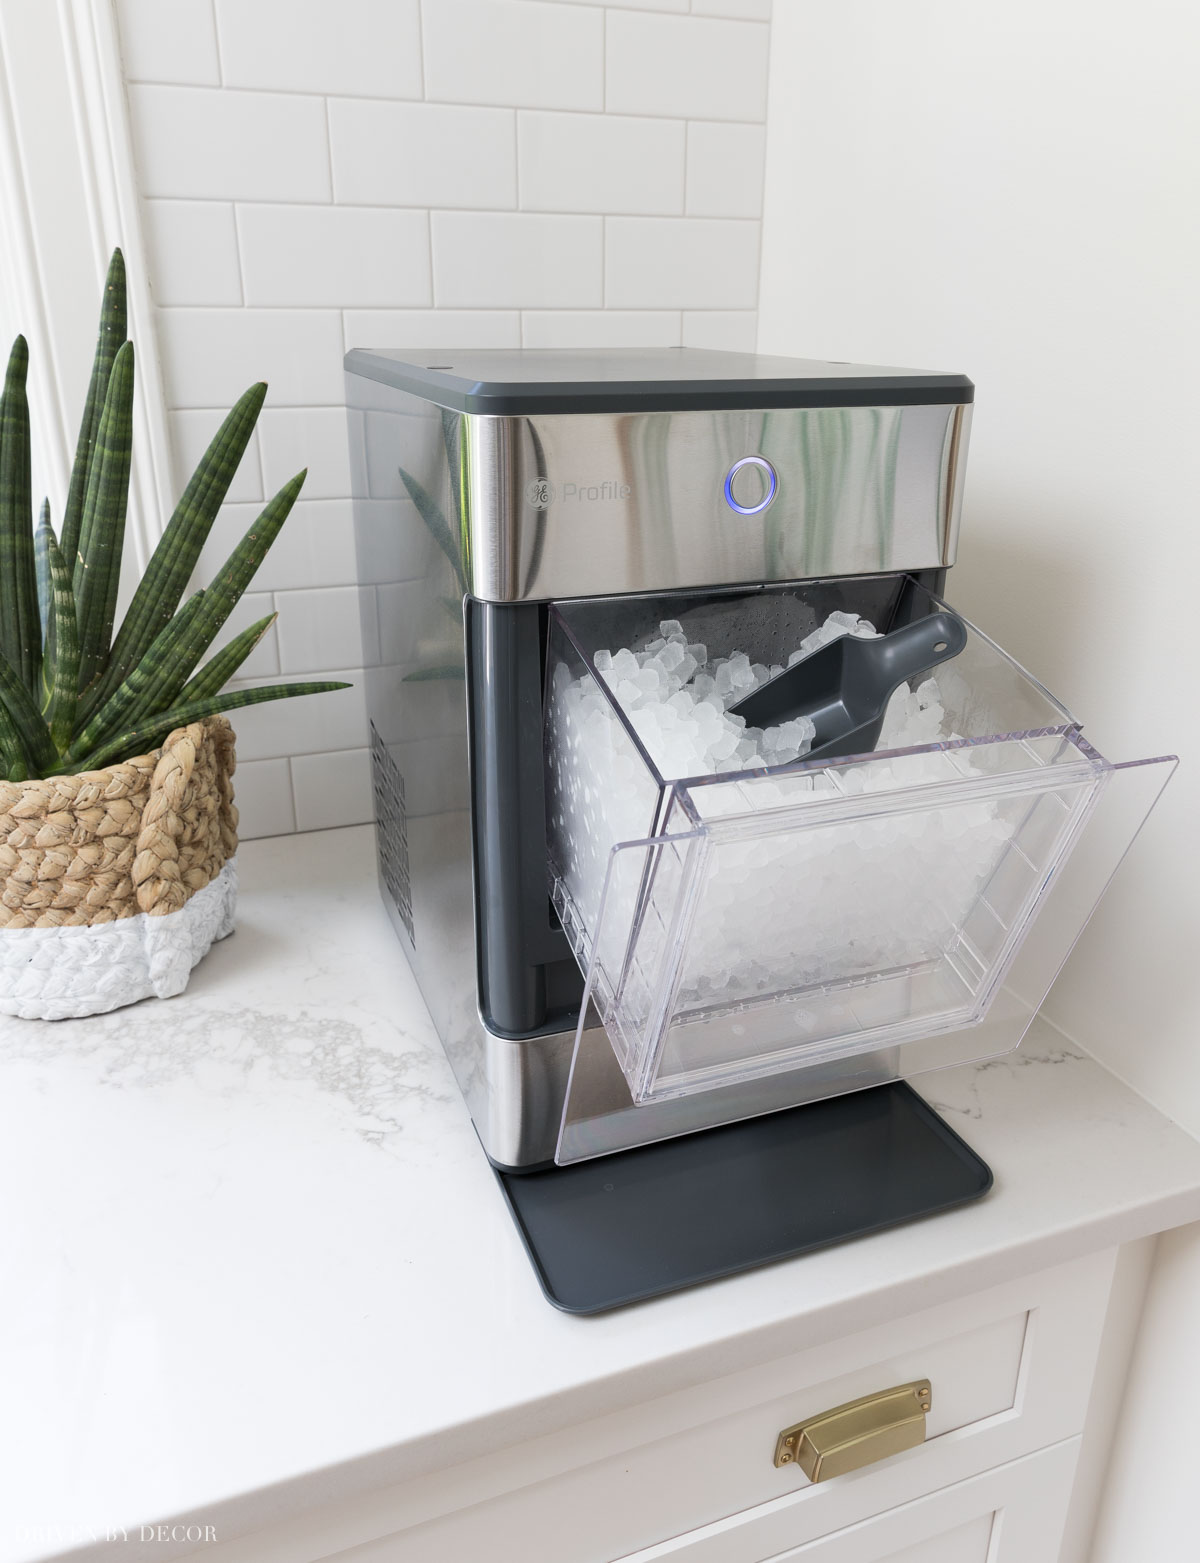 This countertop ice maker makes the BEST nugget ice!